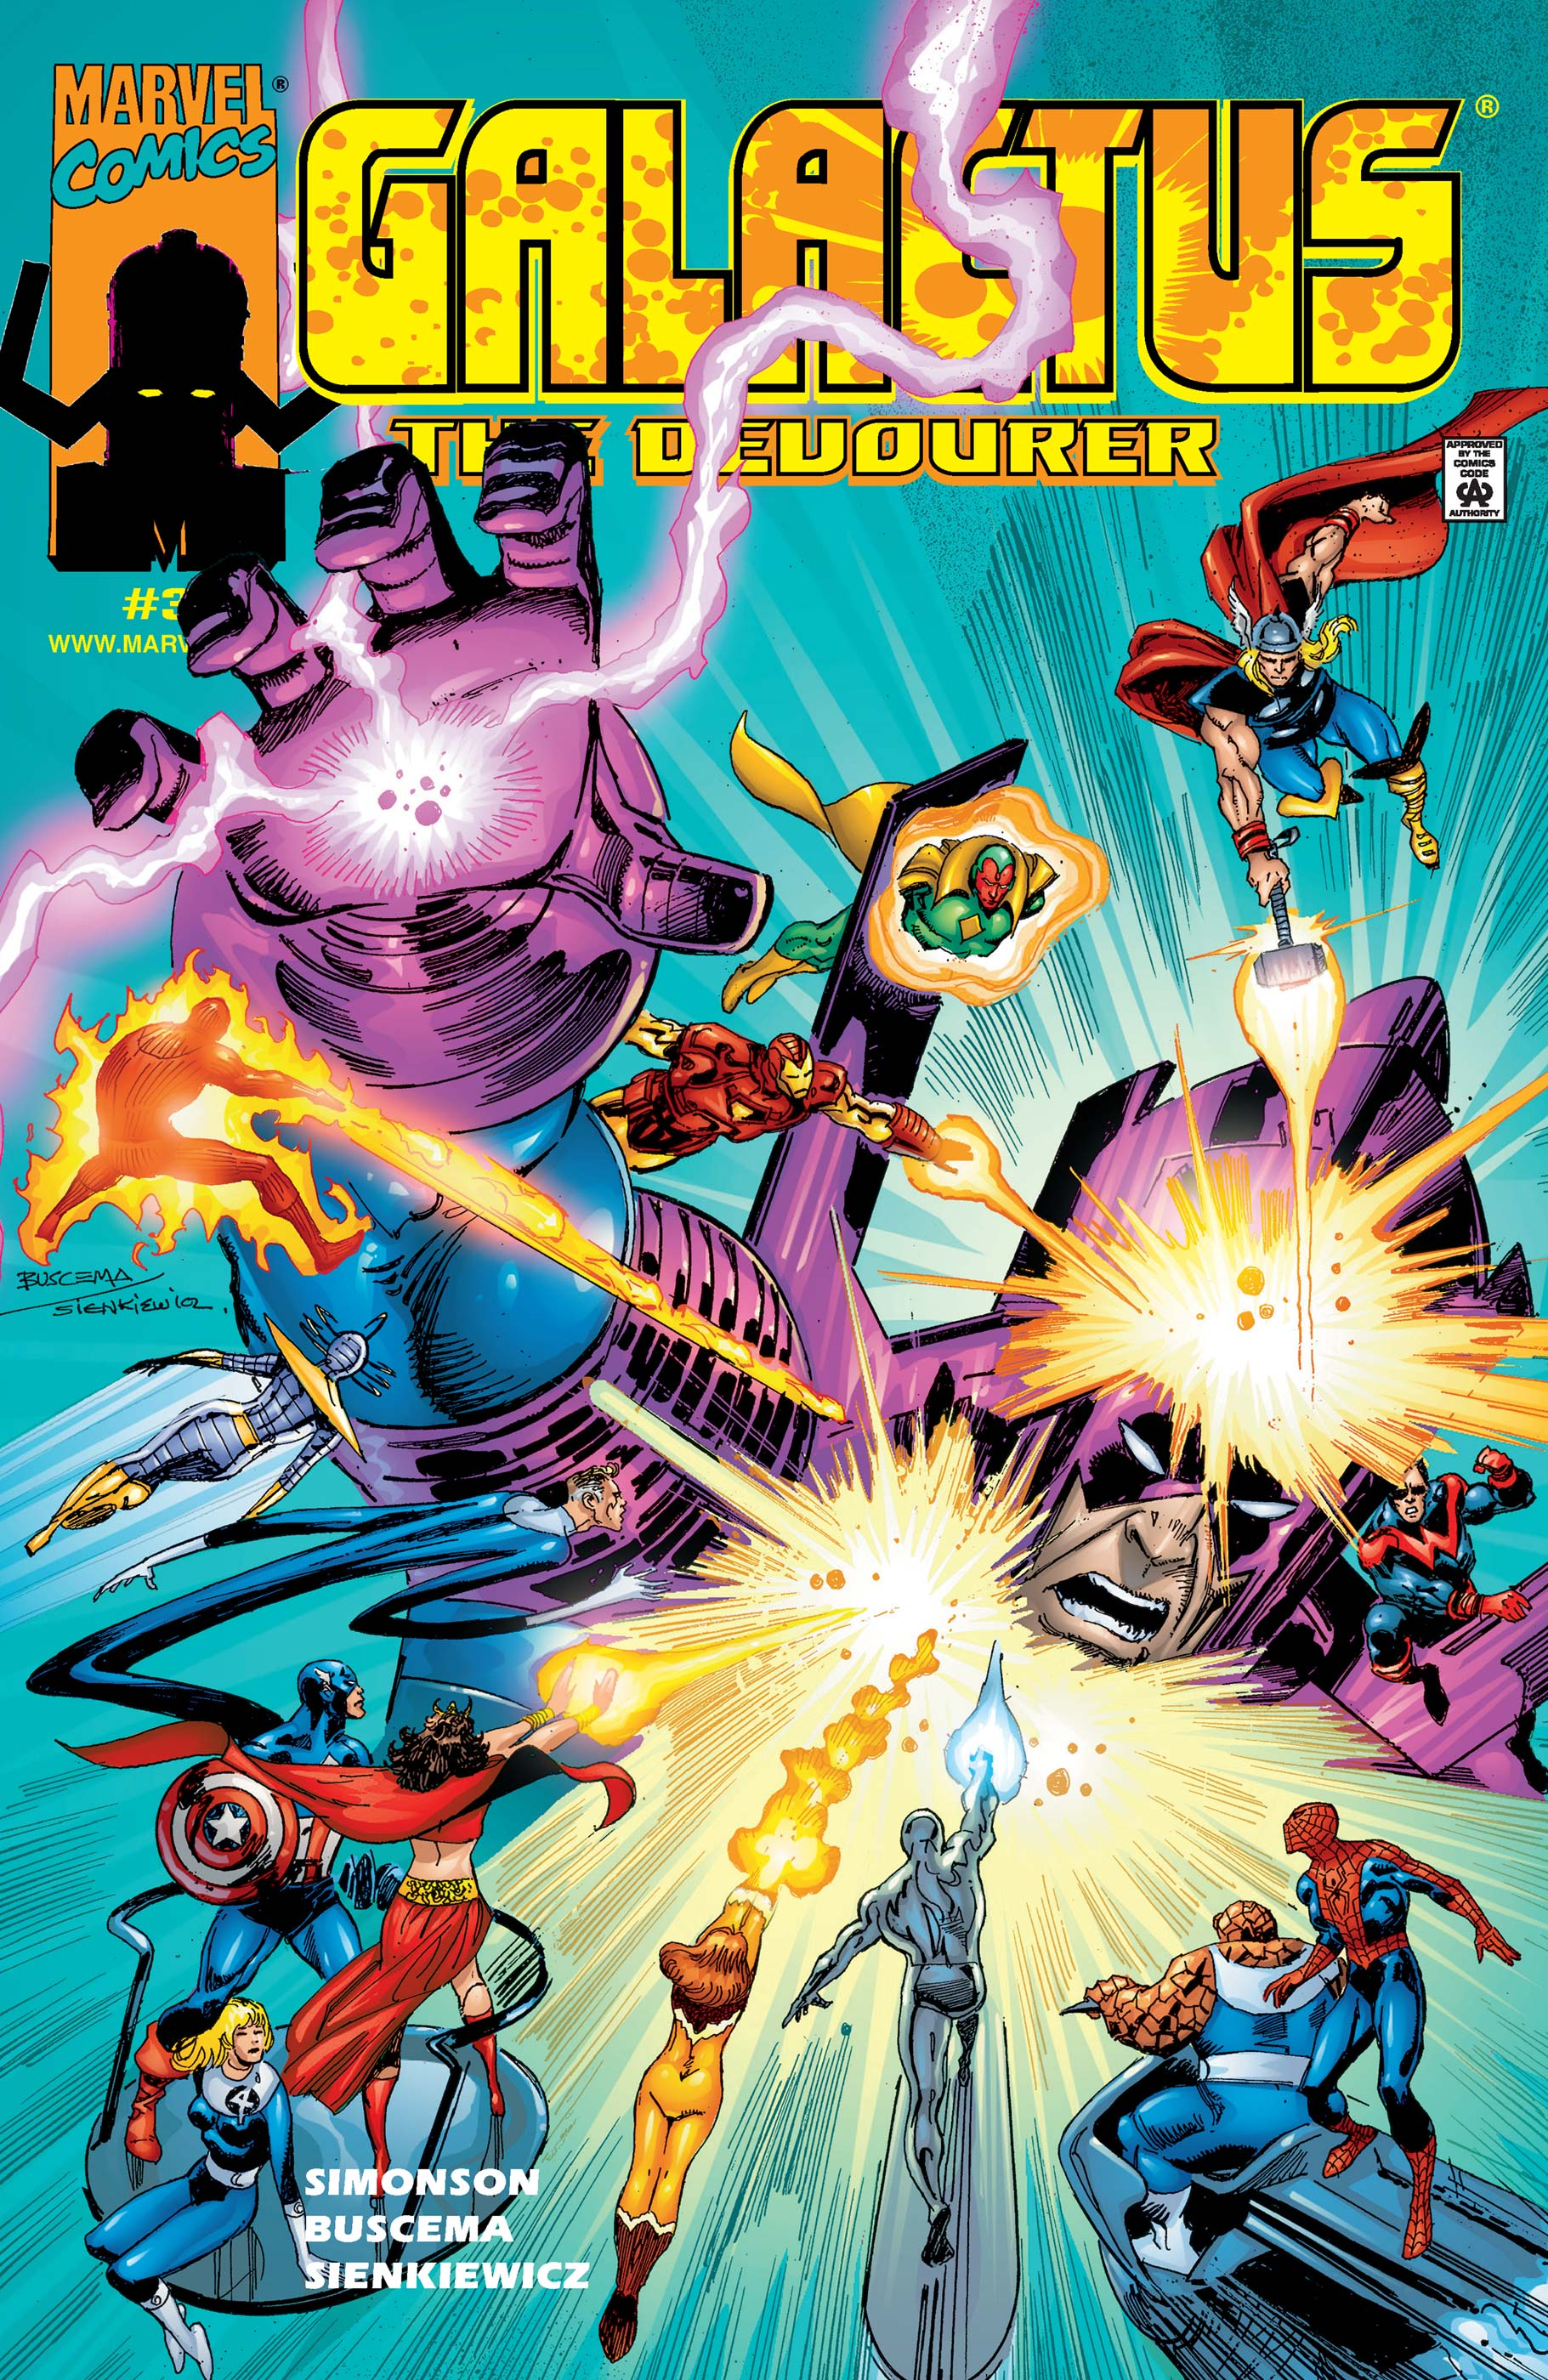 Galactus the Devourer (1999) #3